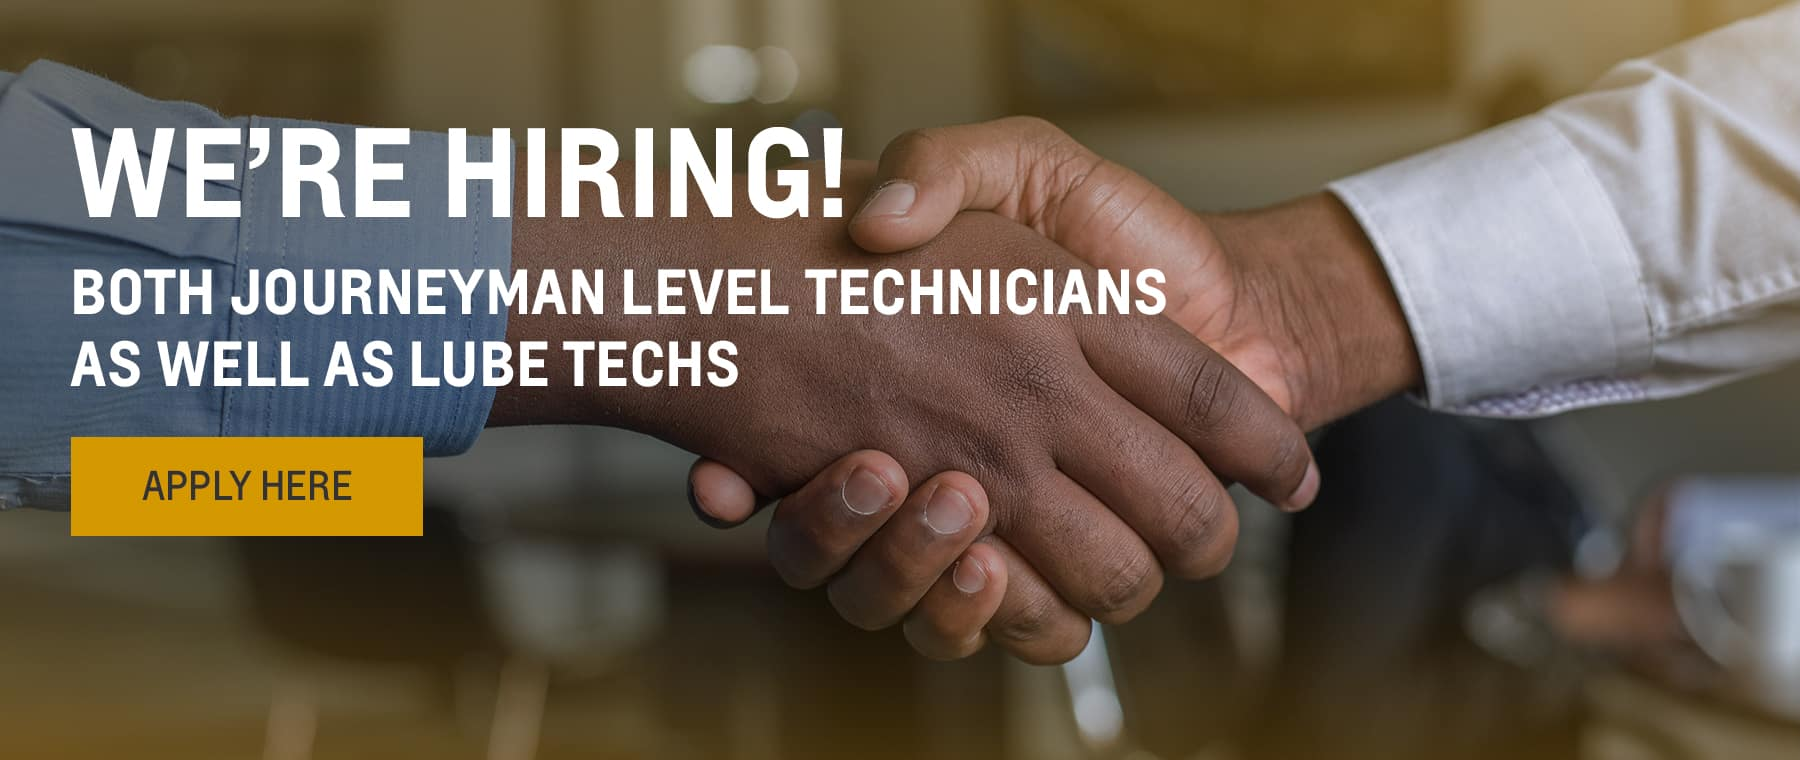 We're Hiring! Both Journeyman Level Technicians as well as Lube Techs.